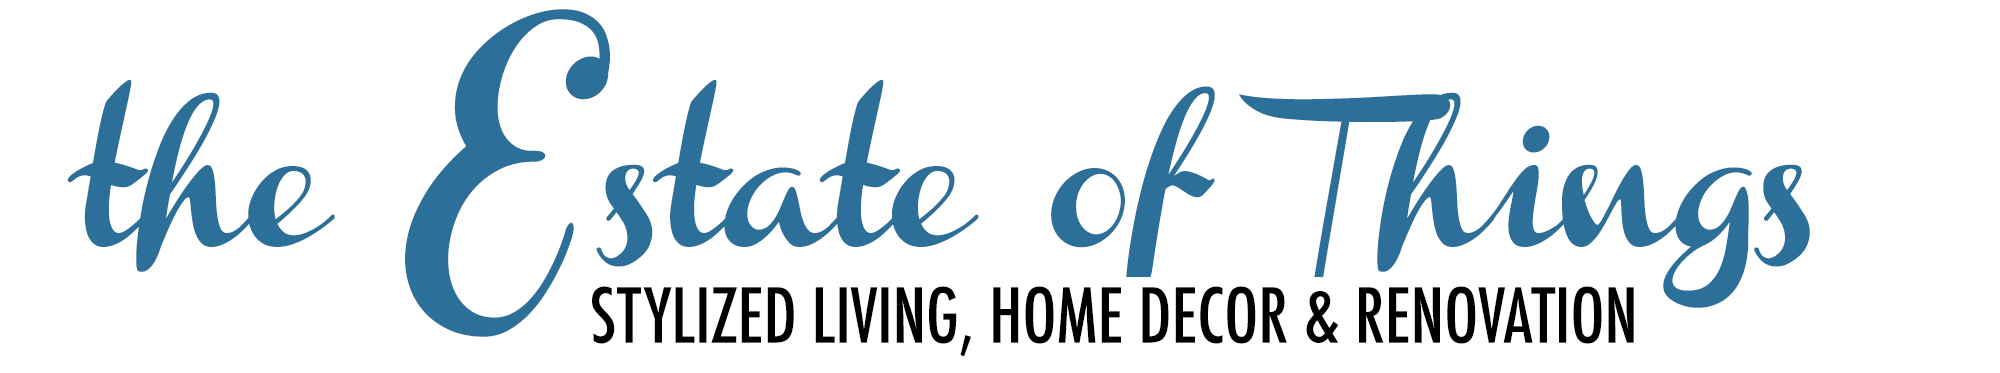 The Estate of Things logo